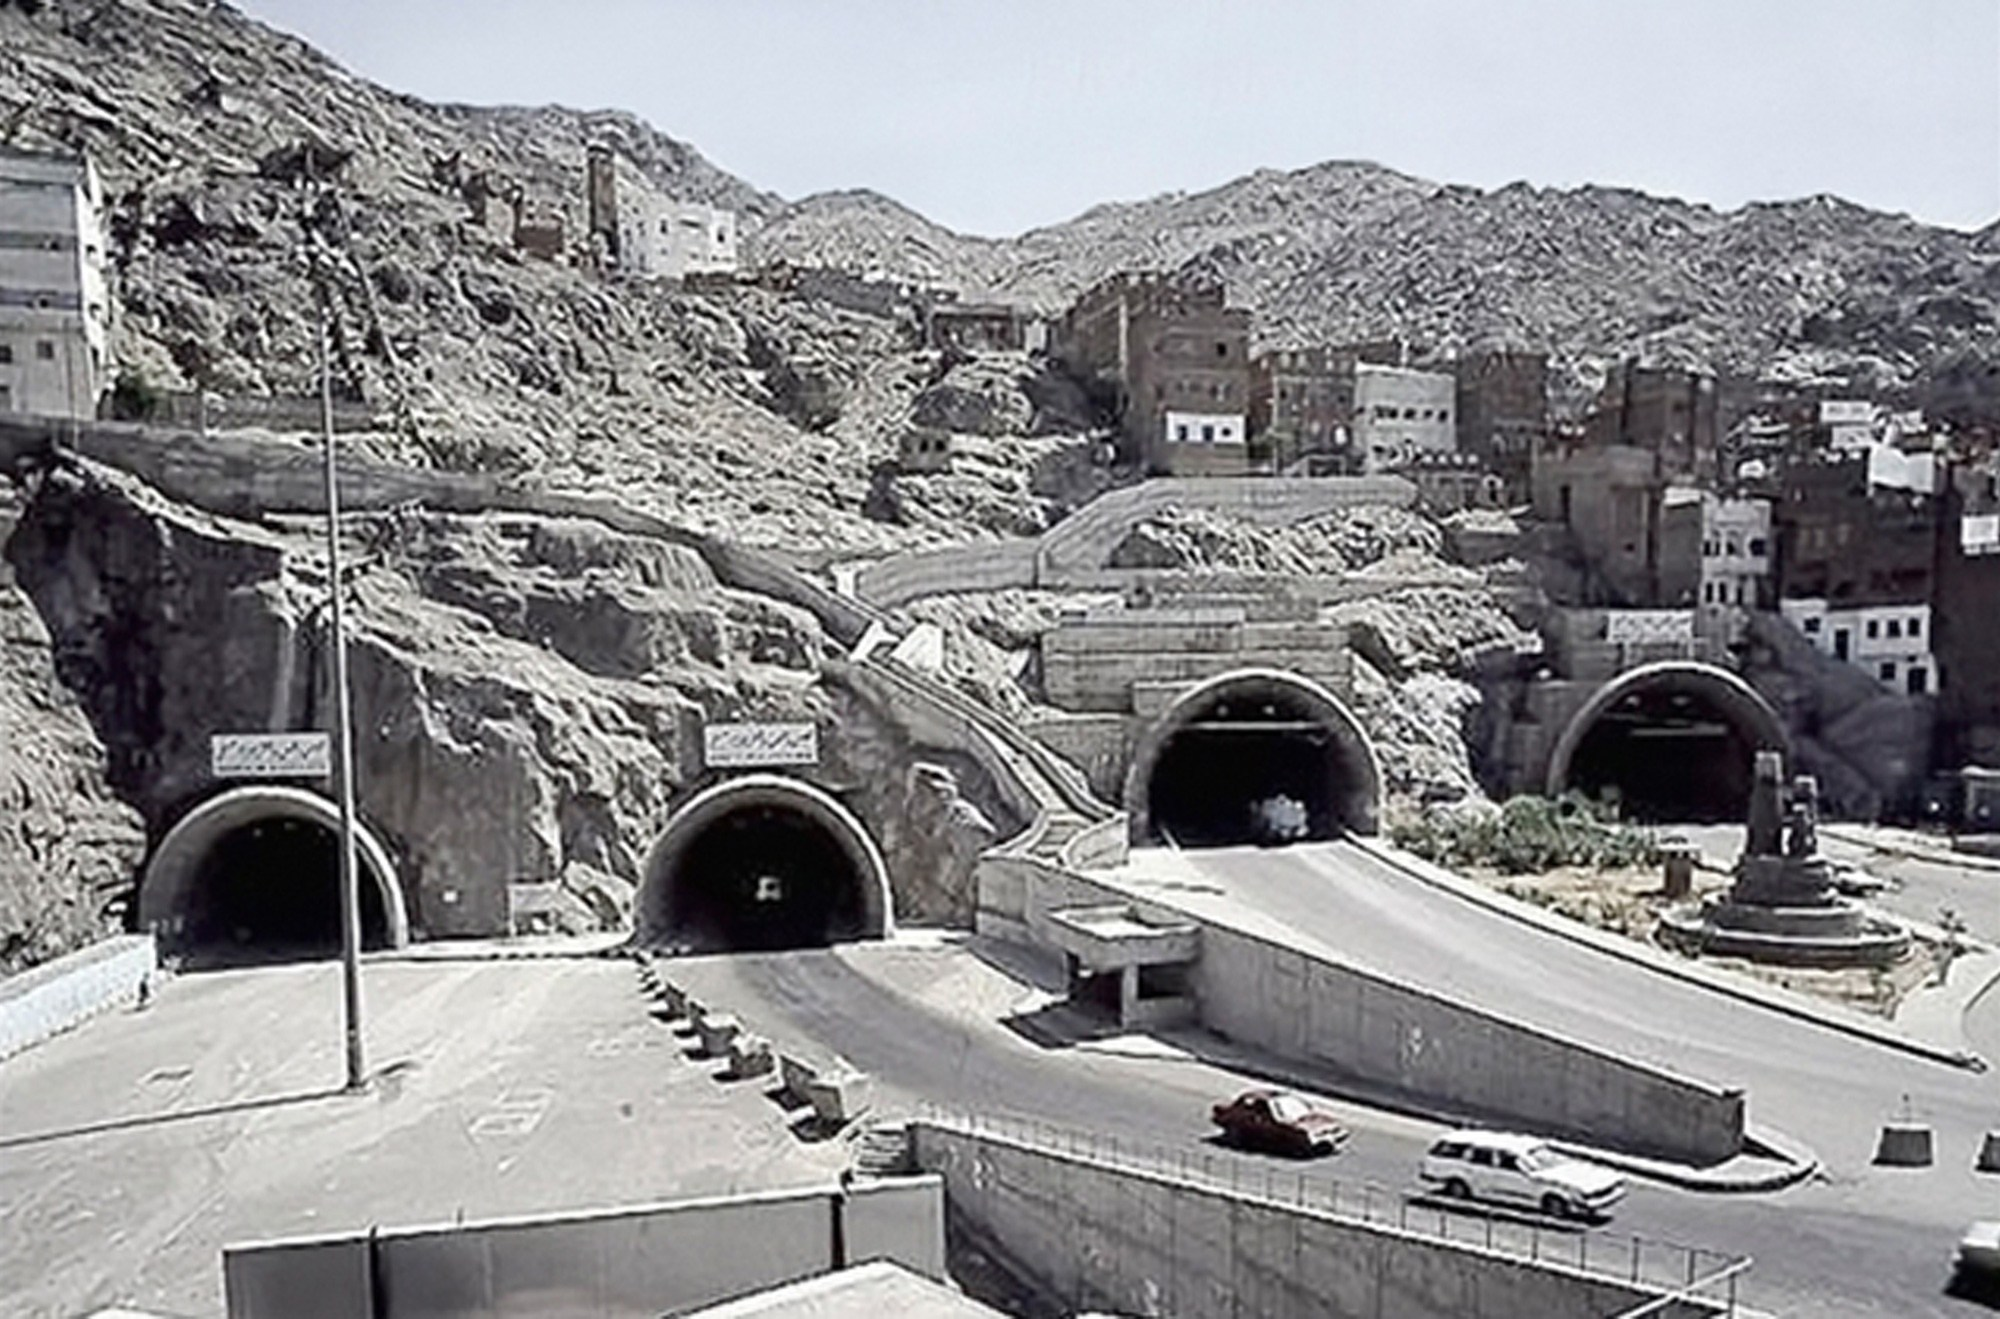 Tunnels in Mecca